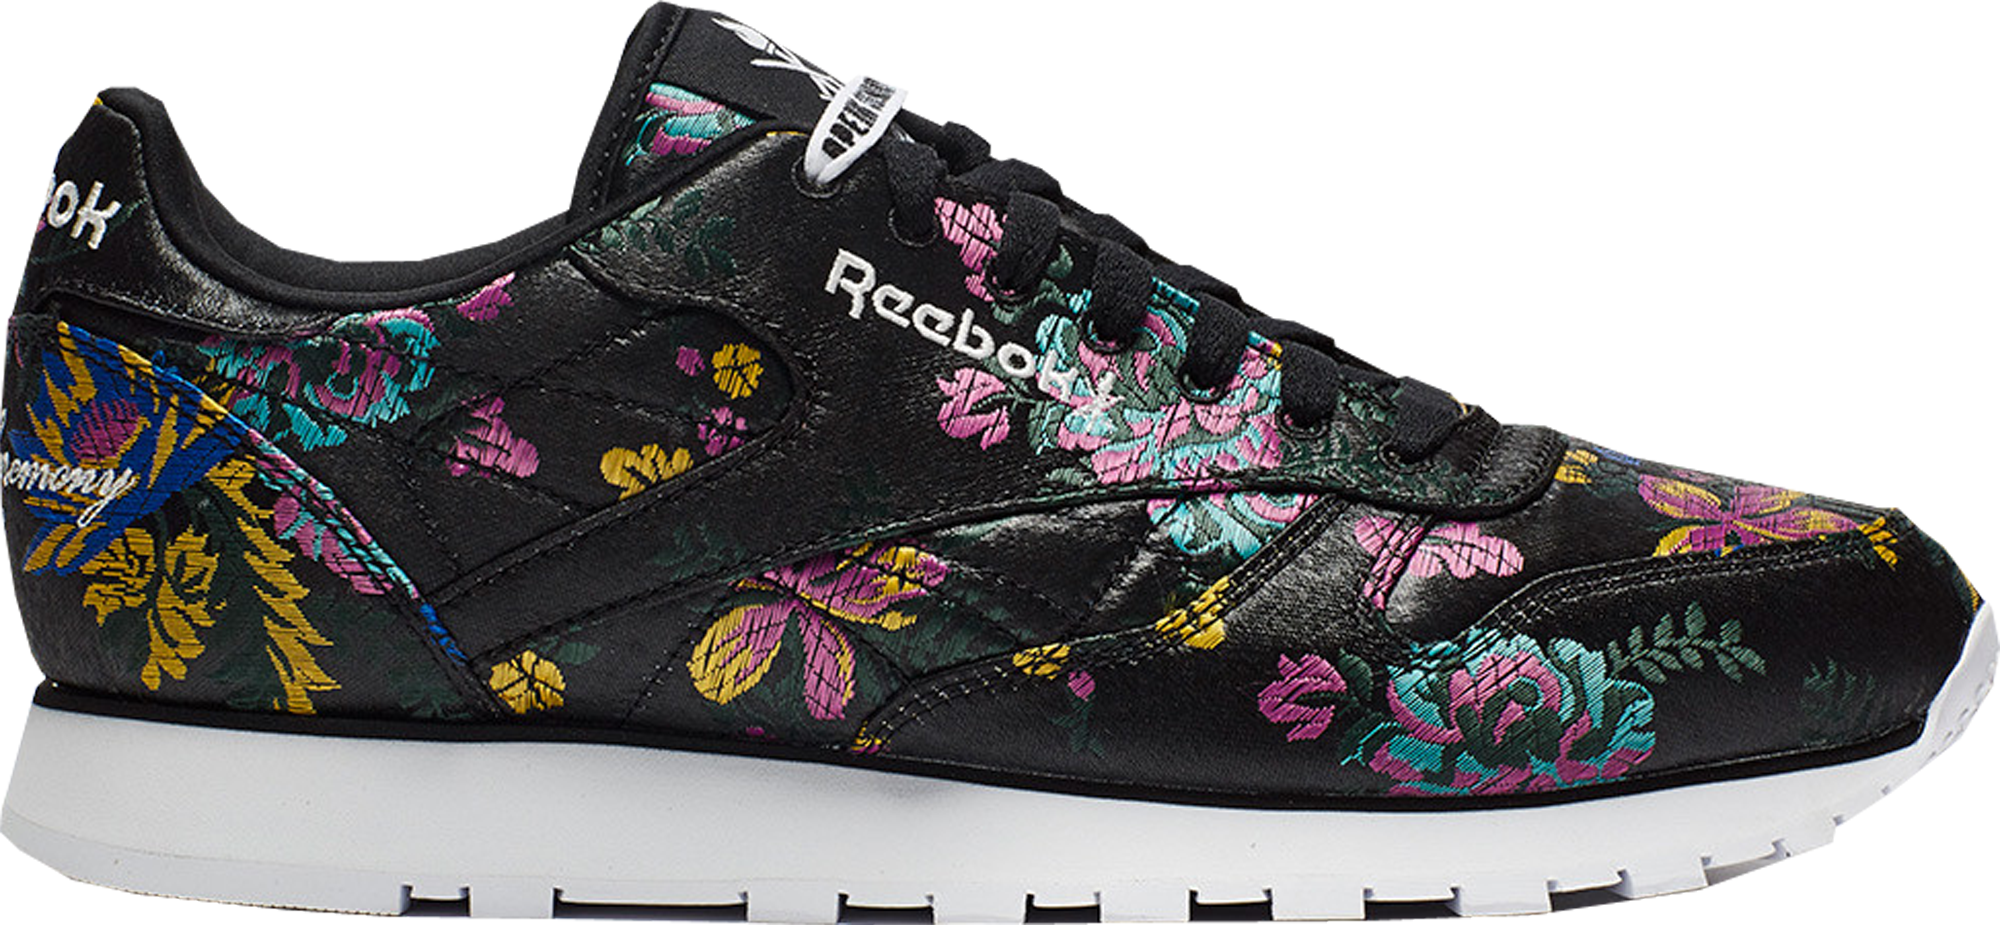 Reebok Classic Leather Opening Ceremony Floral Satin Black